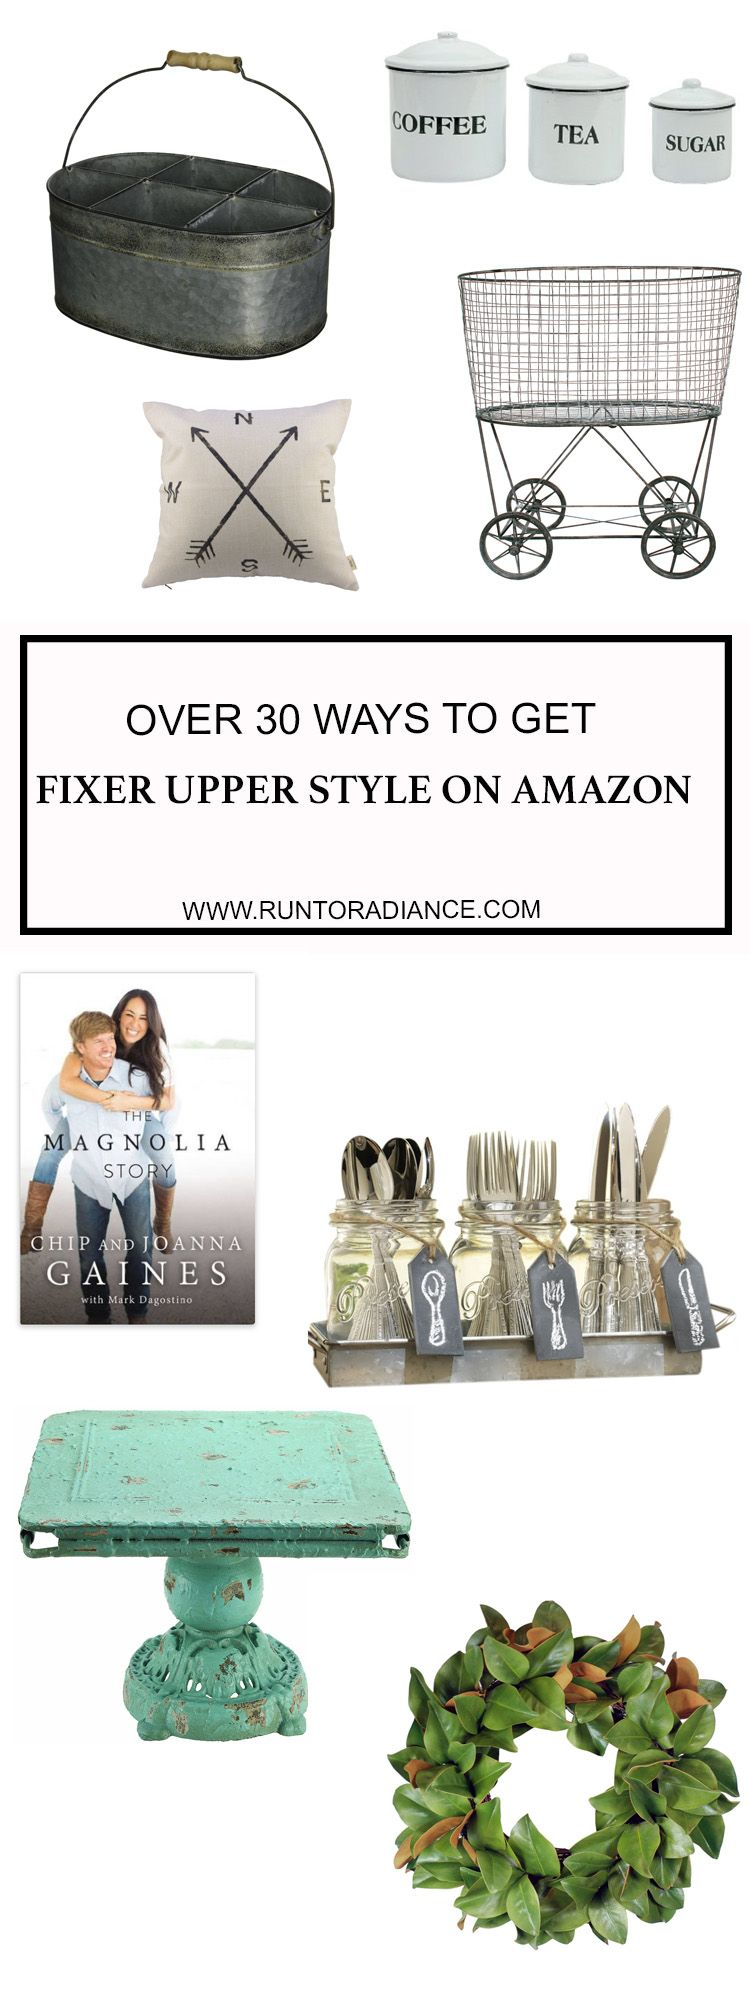 Fixer Upper on Amazon - An easy and quick way to get Fixer-Upper look #fixerupper